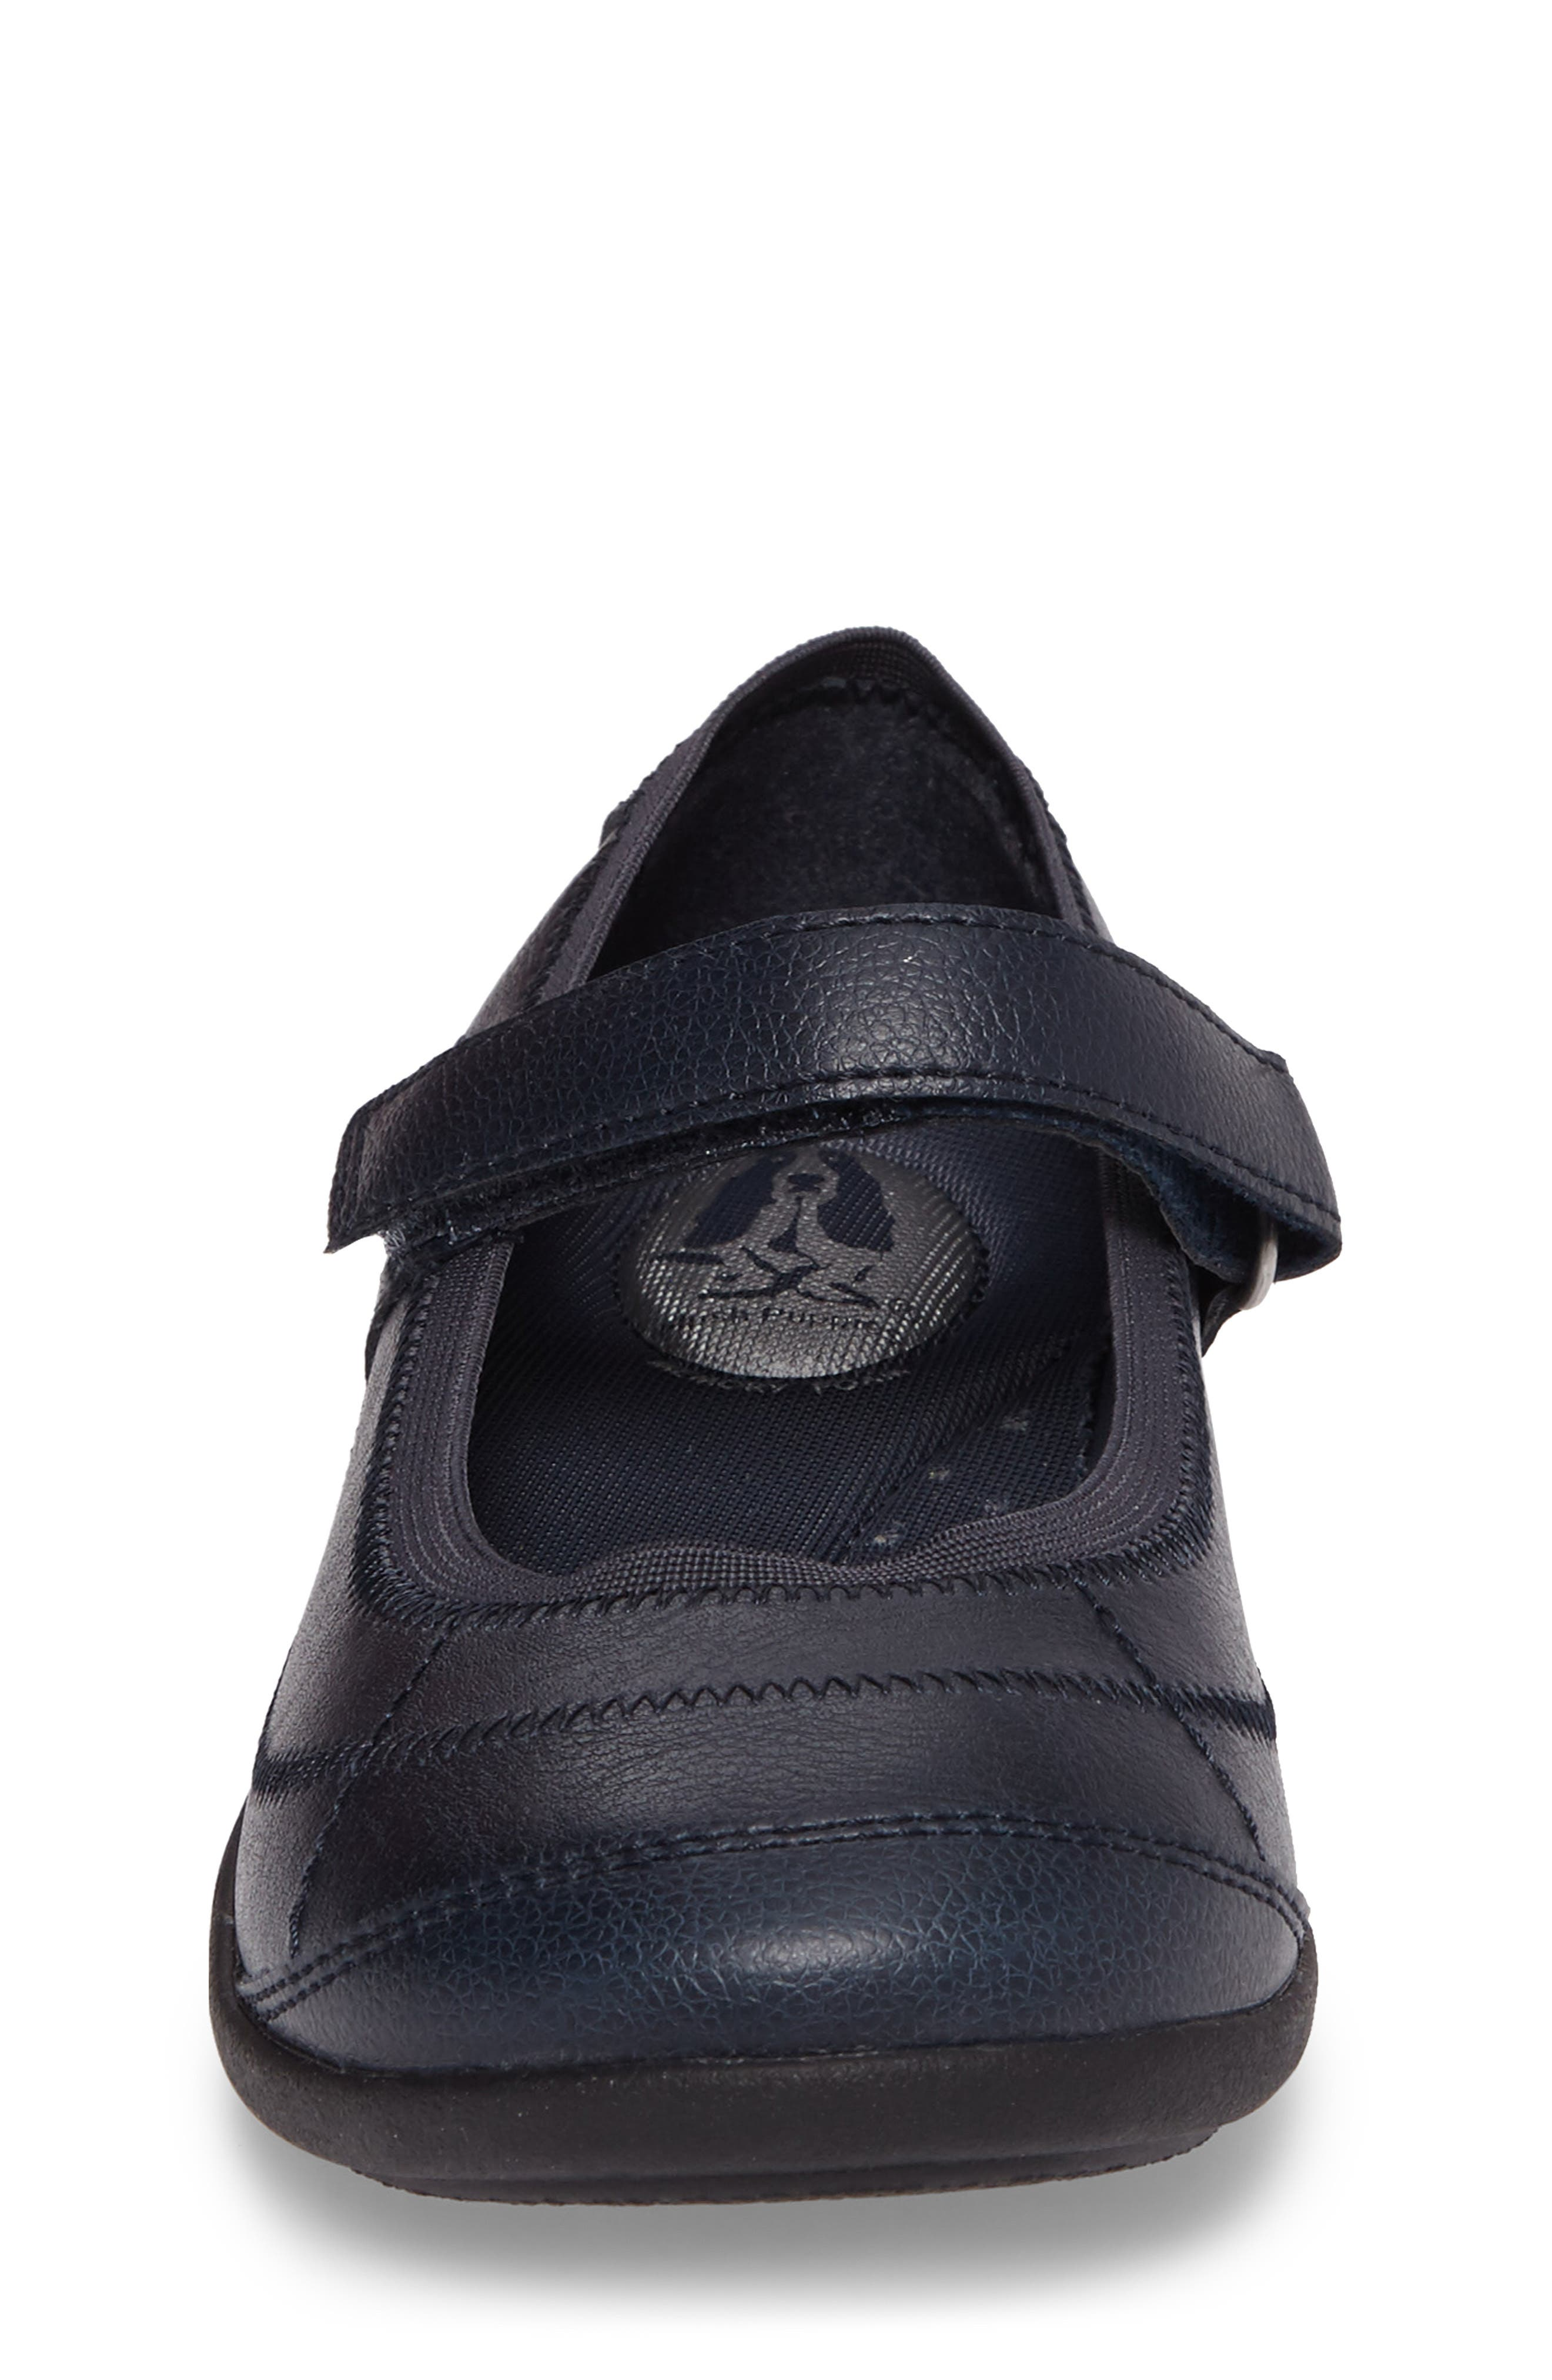 Reese Mary Jane Flat,                             Alternate thumbnail 4, color,                             NAVY LEATHER